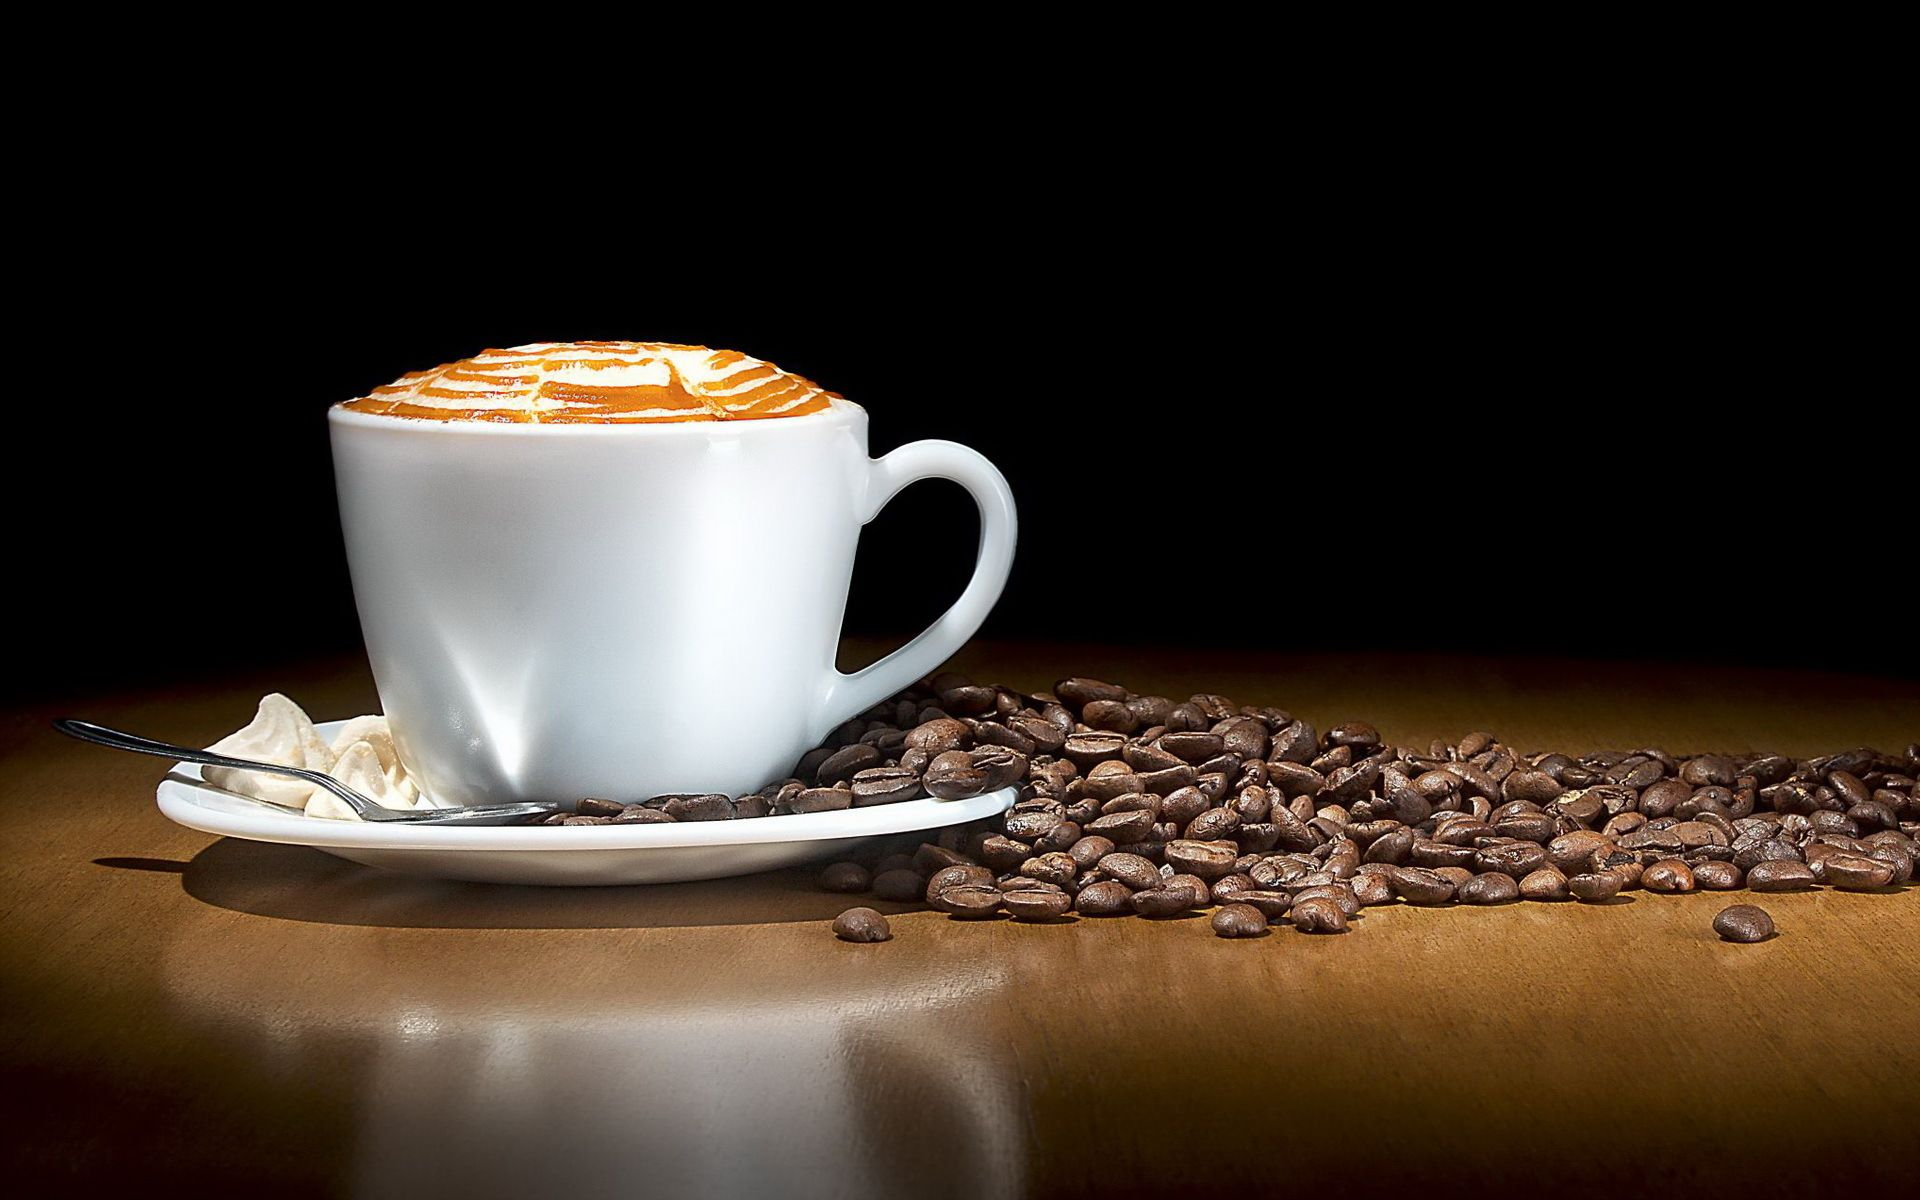 coffee cup image free